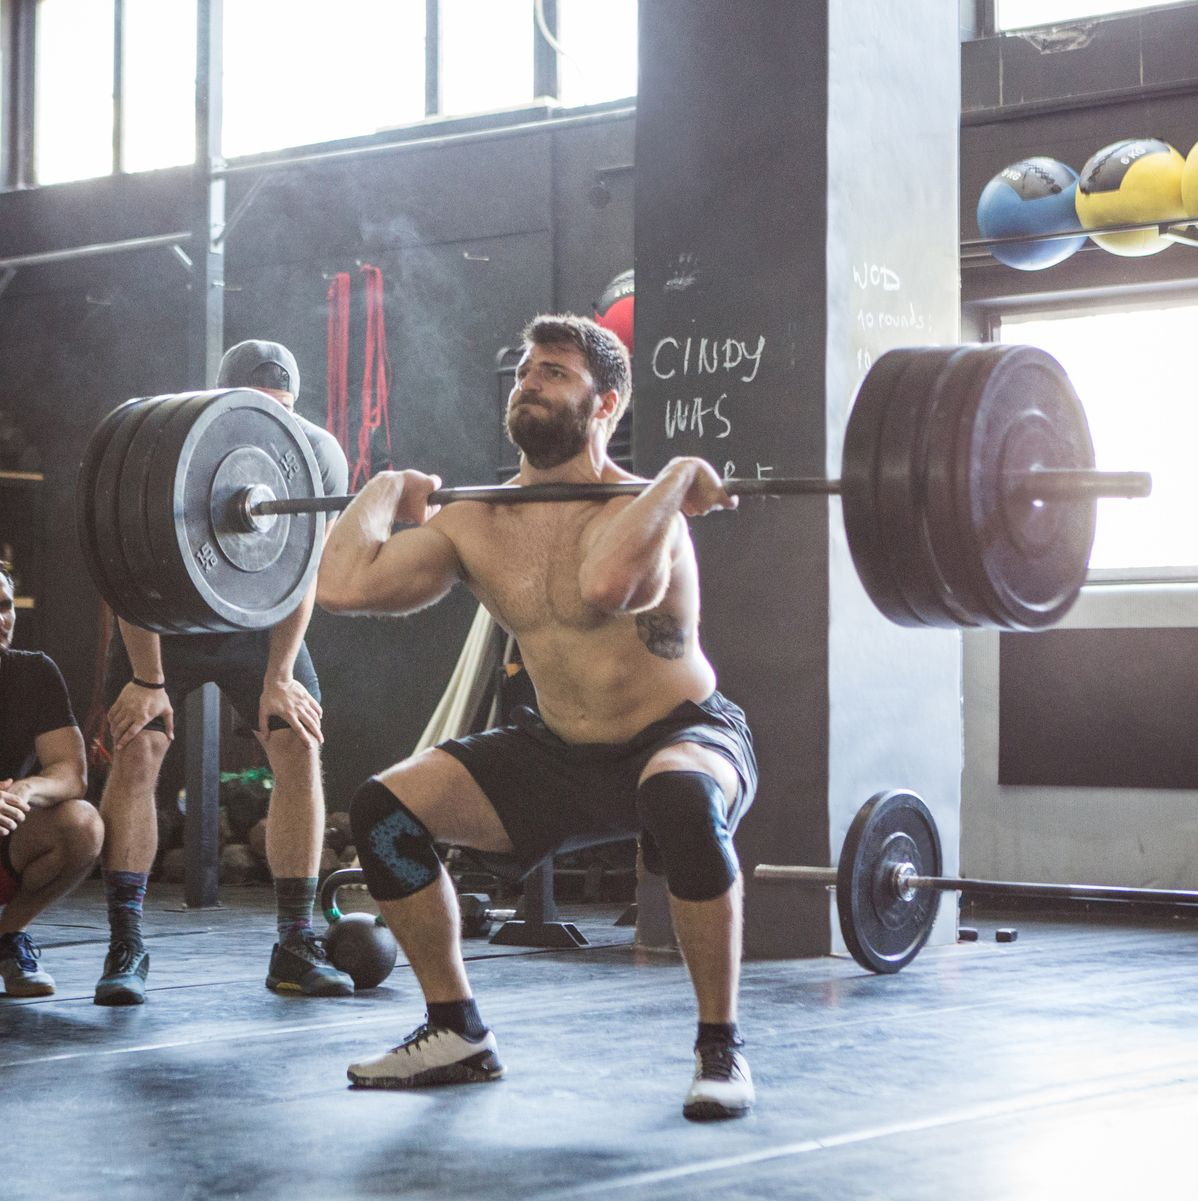 Your Guide To Crushing 19.5, The Final CrossFit Open Workout